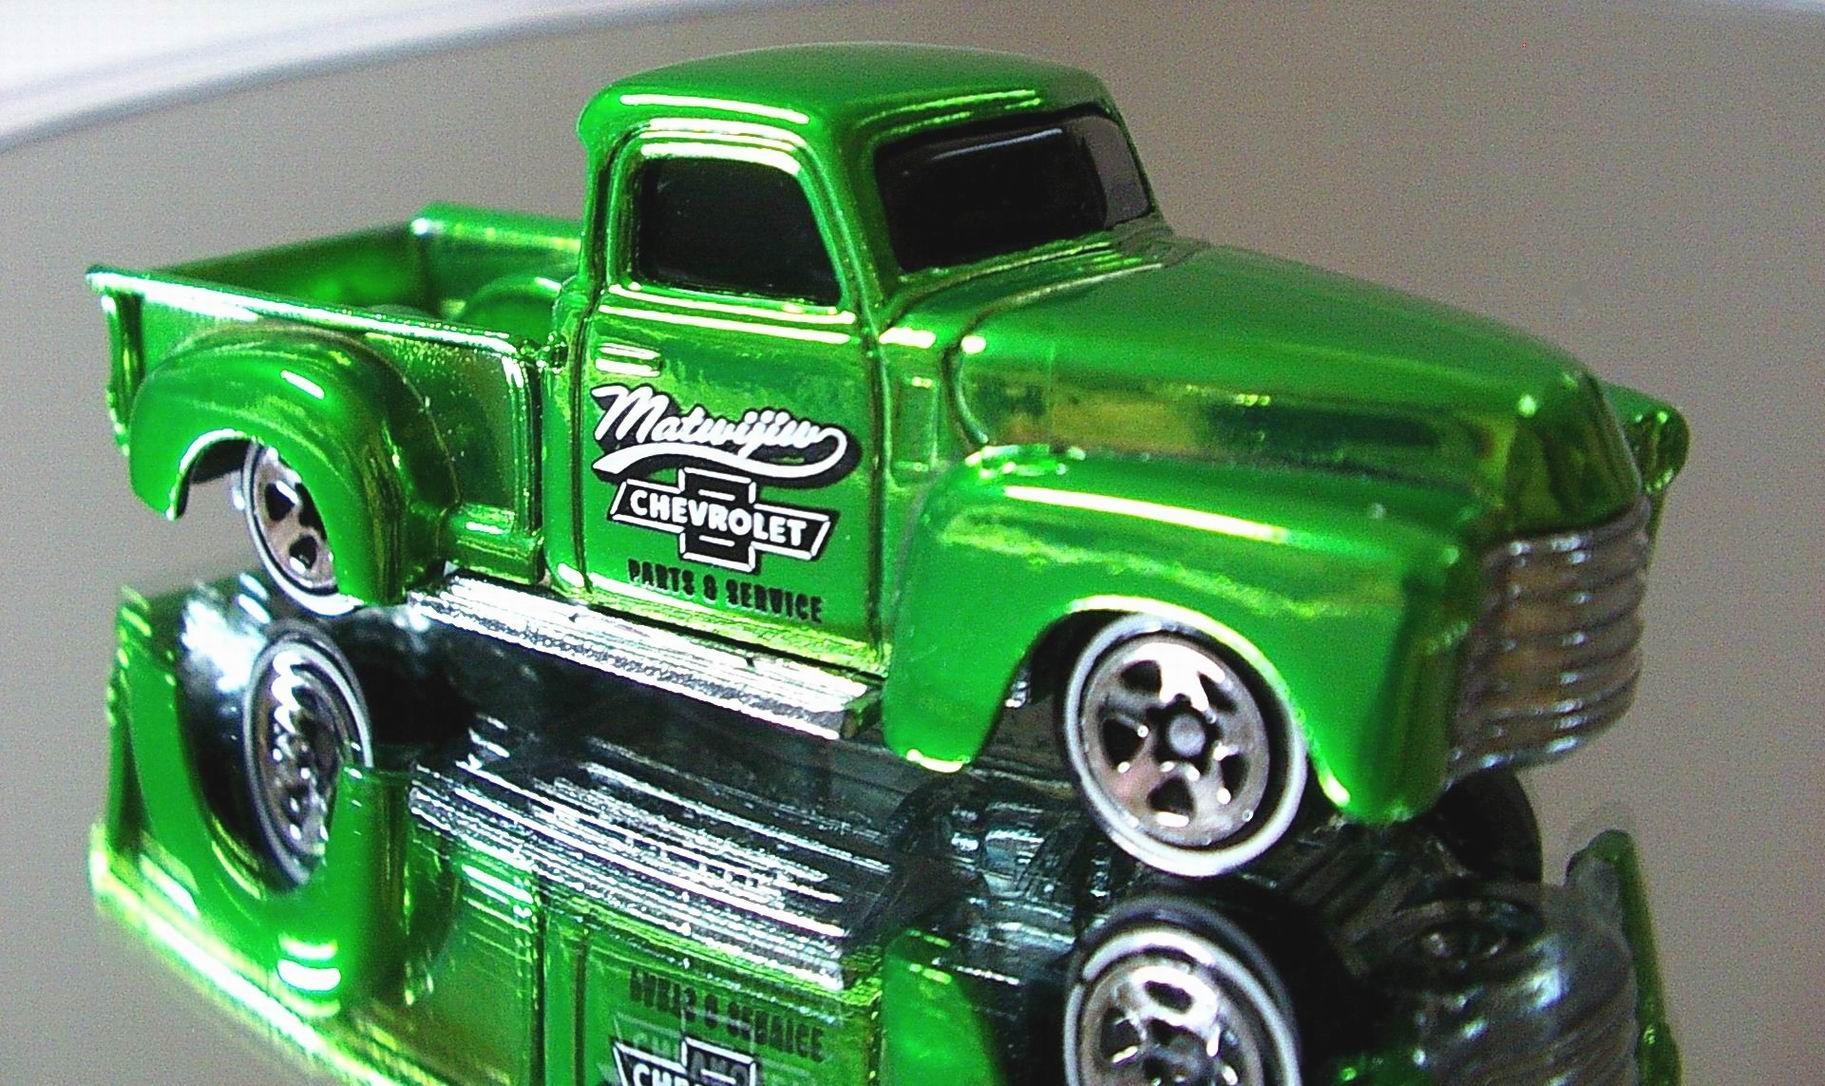 52 Chevy Truck Hot Wheels Wiki Fandom Powered By Wikia 1949 Paint Colors